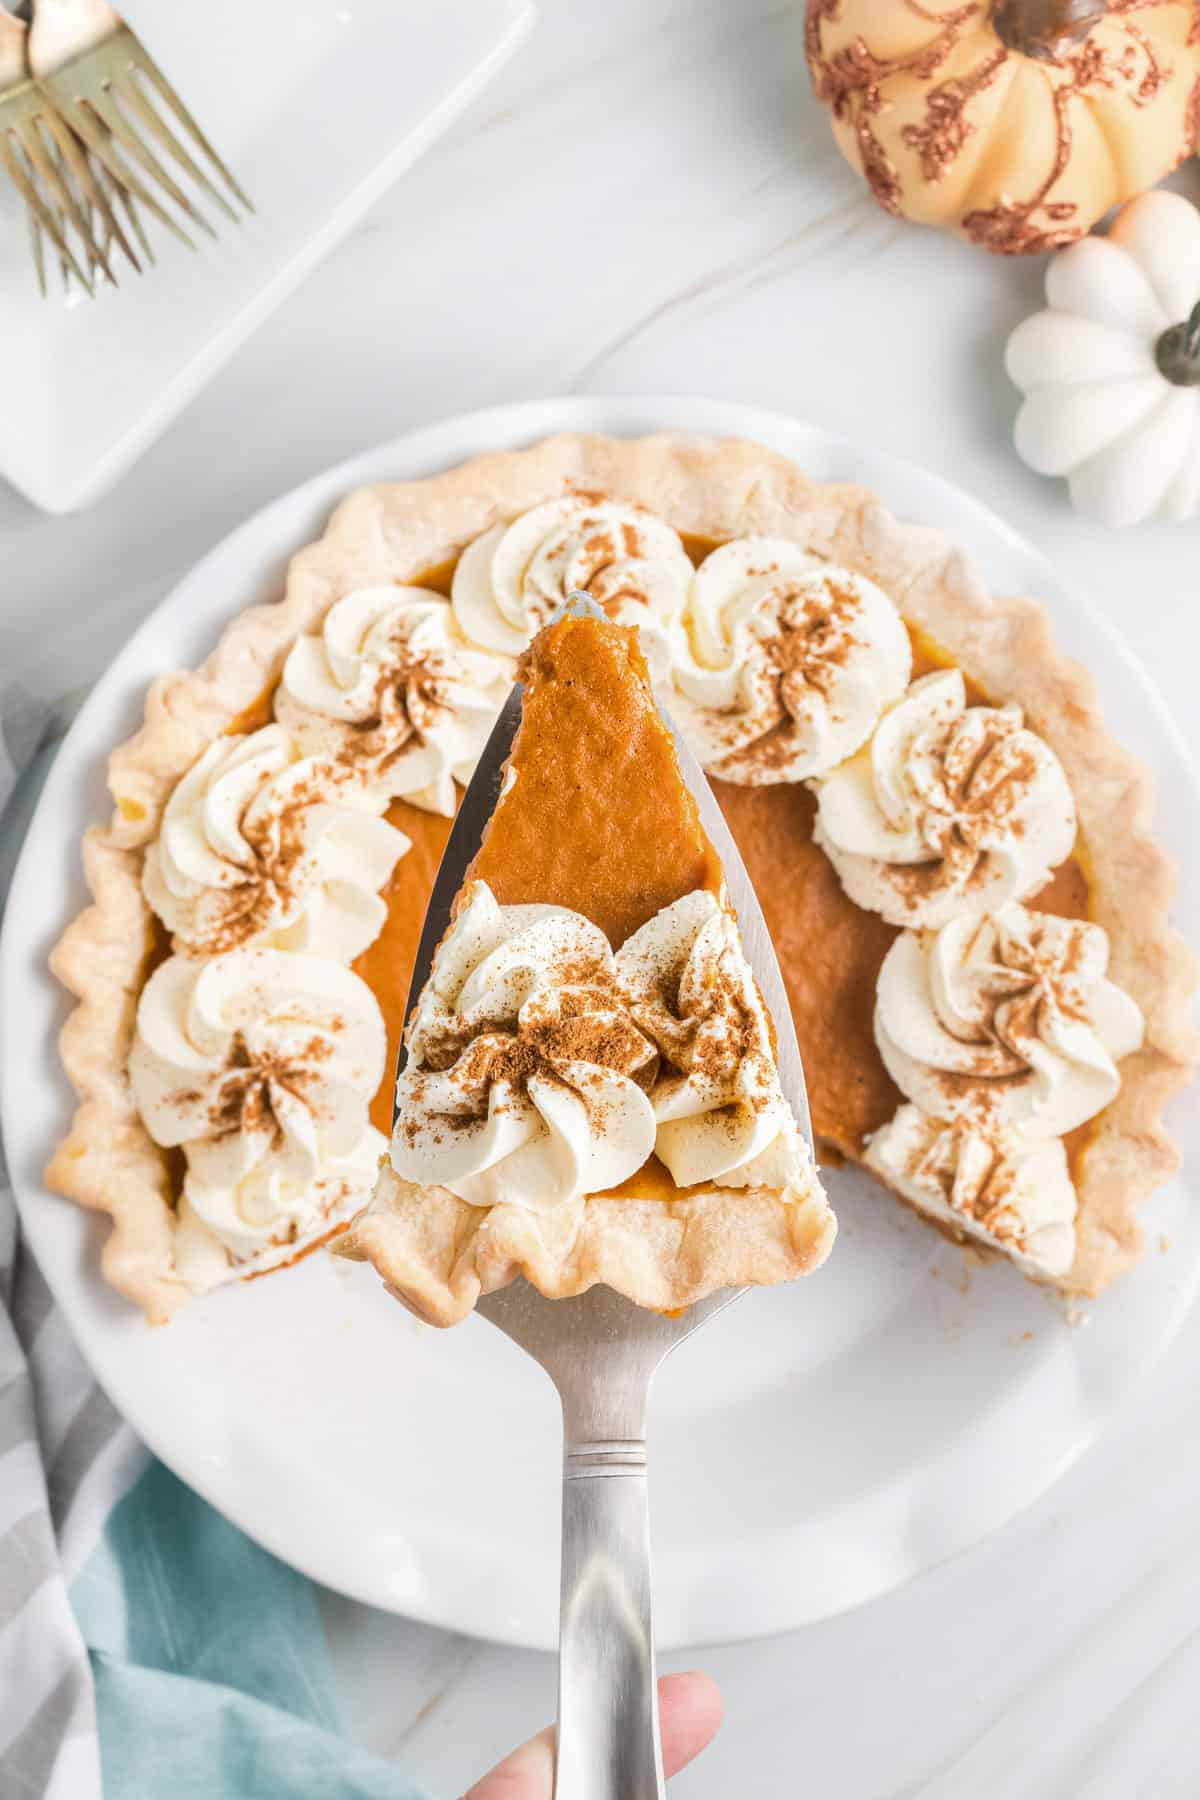 a slice of pumpkin chiffon pie on a serving utensil being held over the pie.